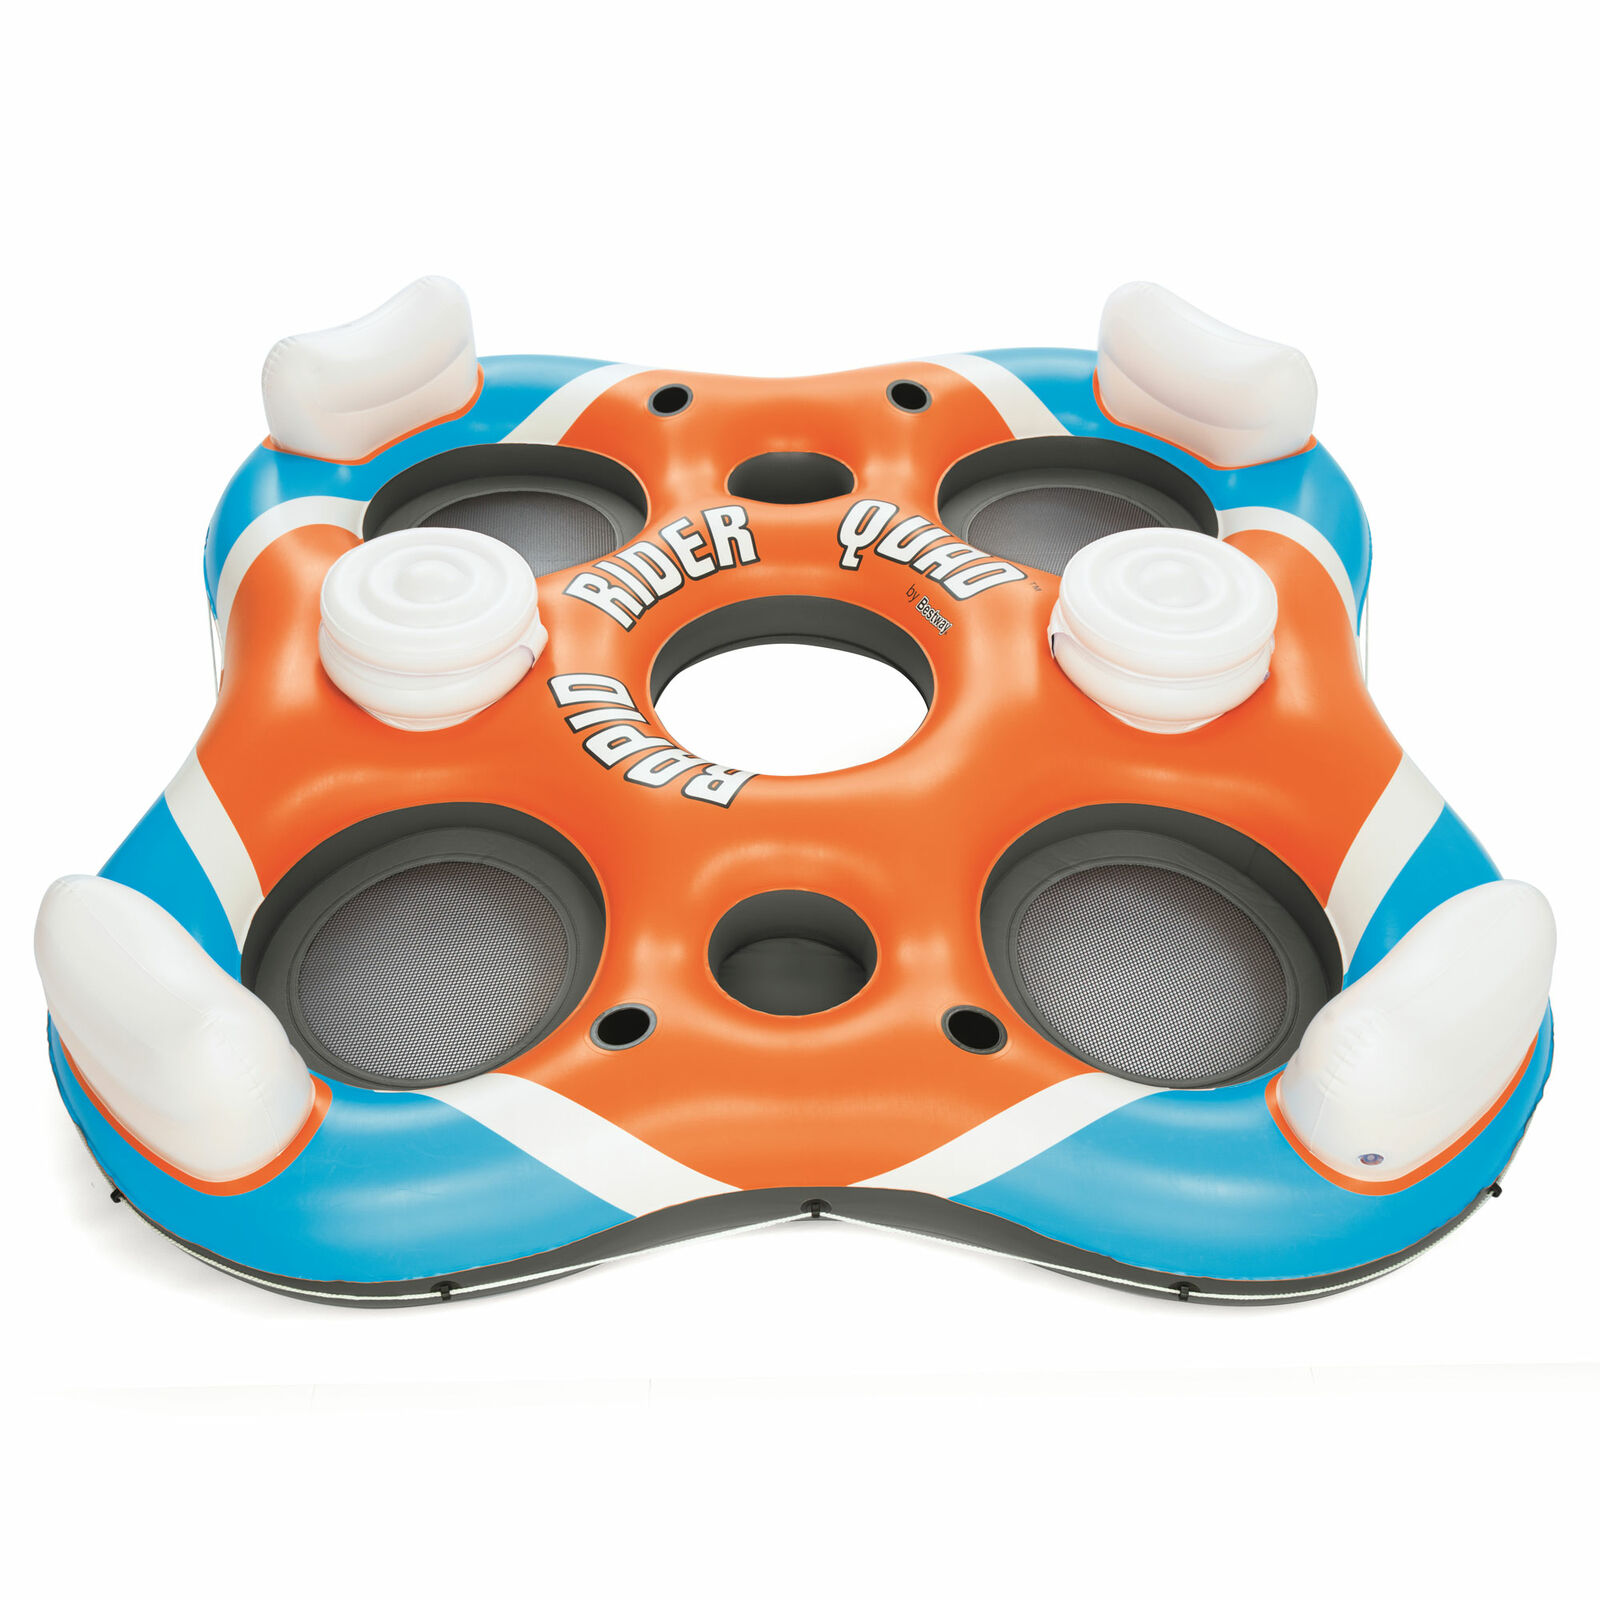 Bestway 43115E 101 Inch Rapid Rider 4 Person Floating Island Raft w  Coolers